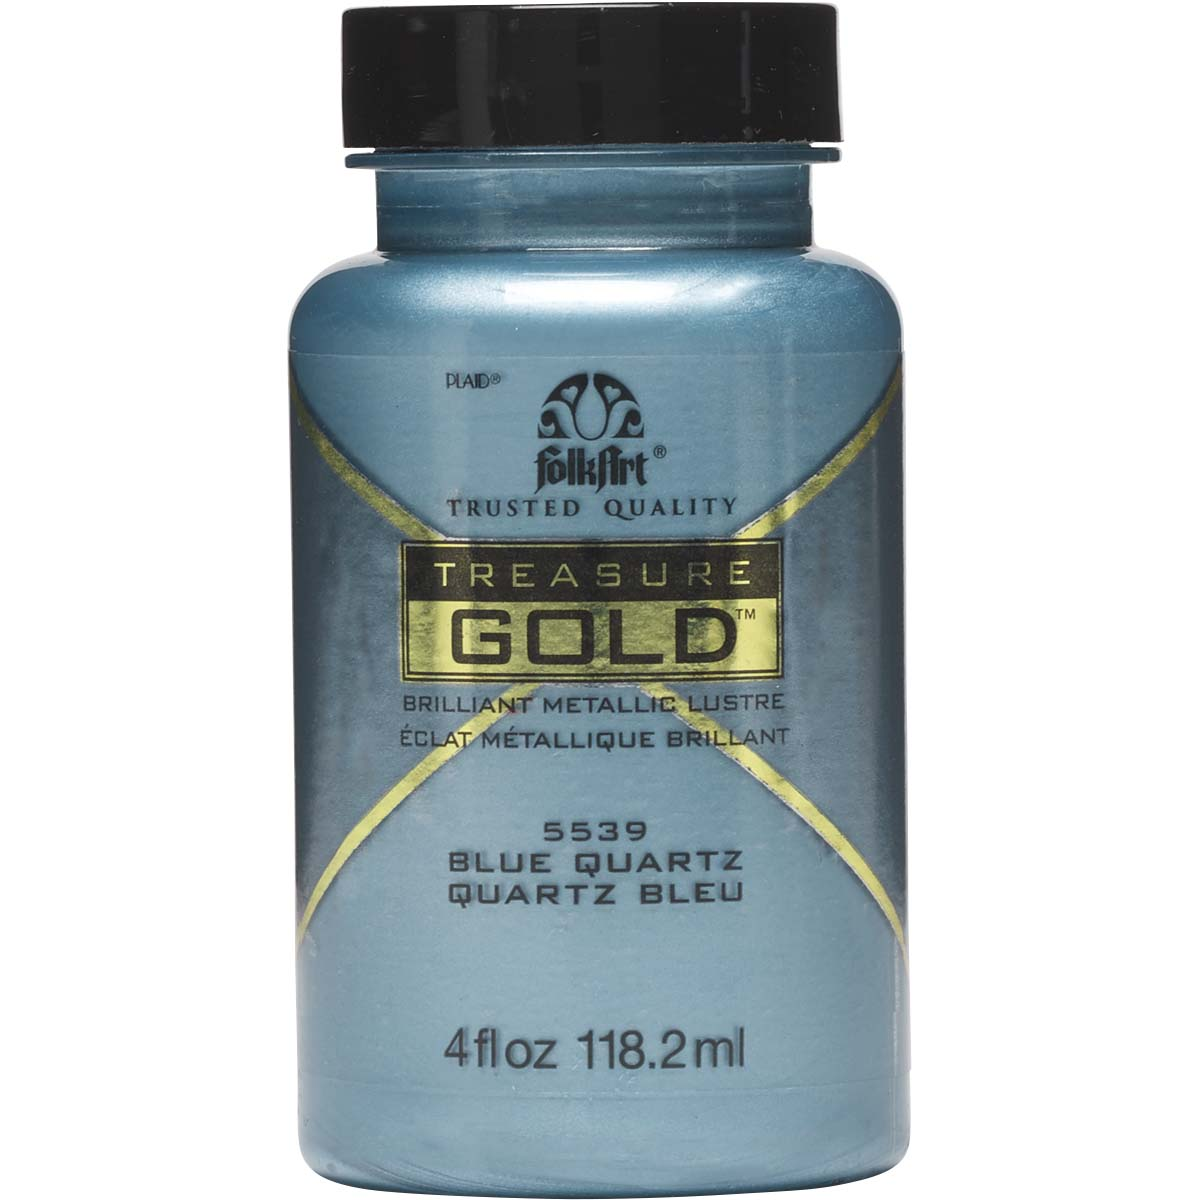 FolkArt ® Treasure Gold™ - Blue Quartz, 4 oz. - 5539